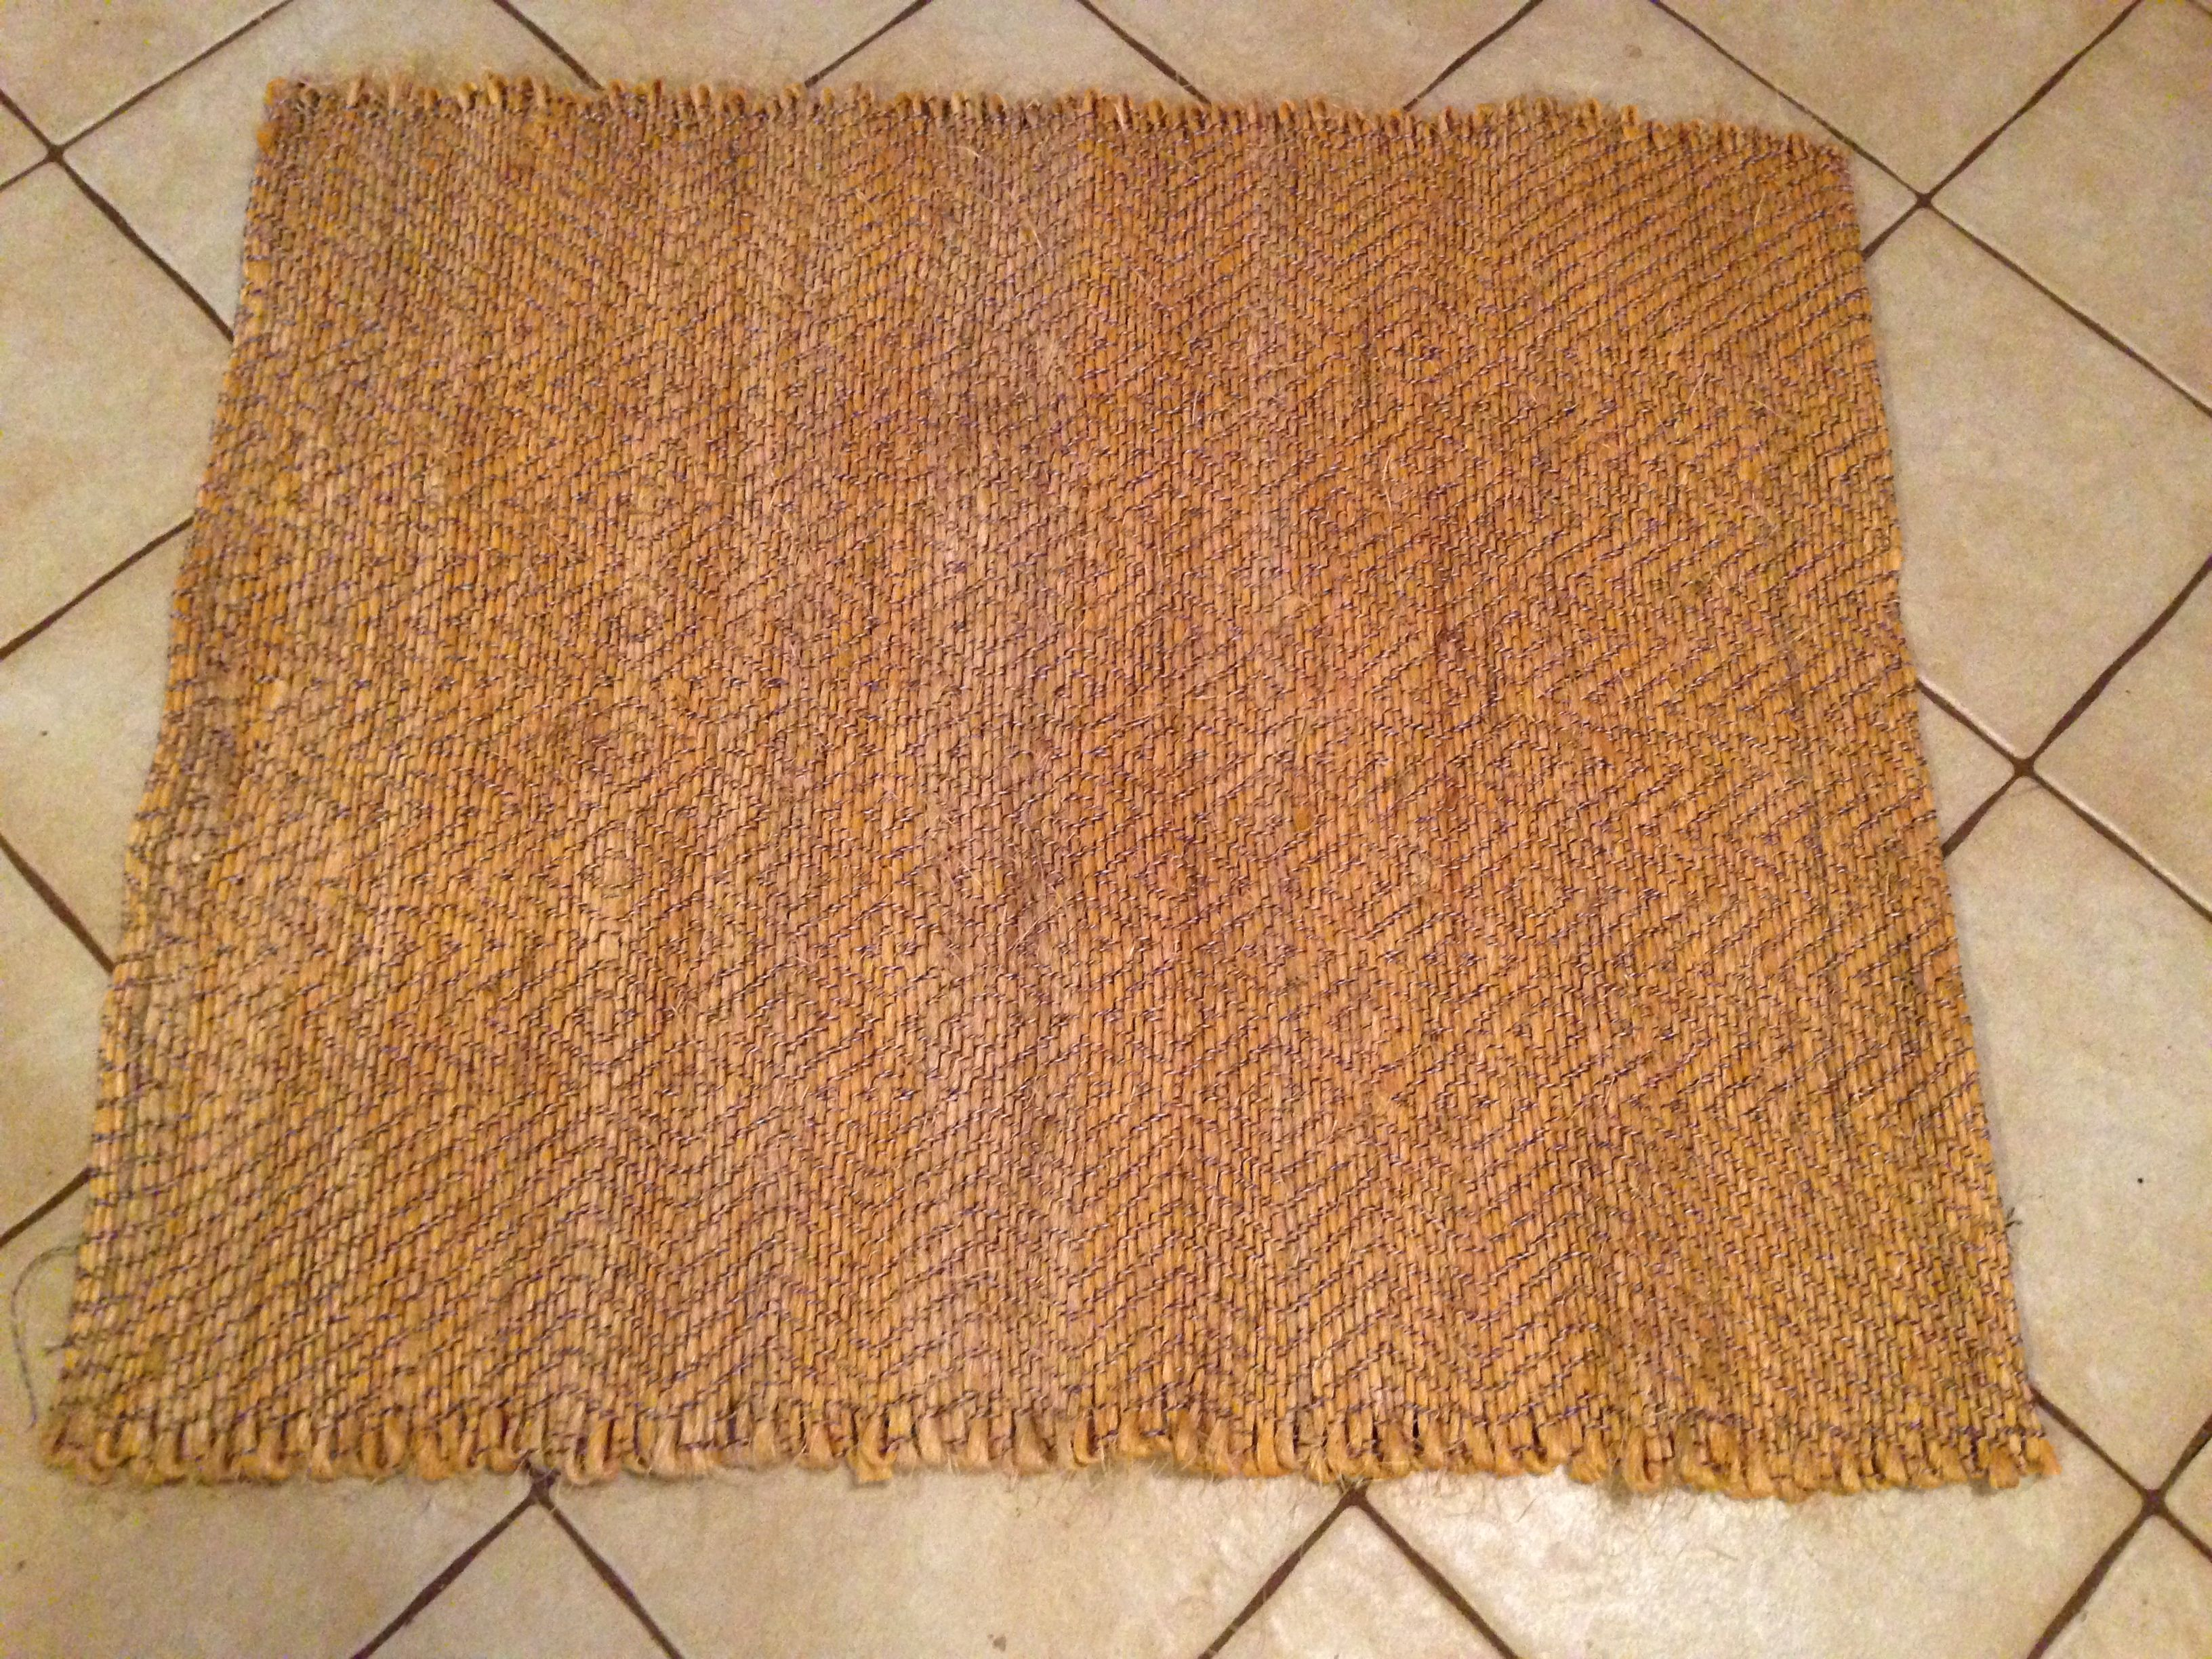 Hand woven door mat made from Recycled Hay